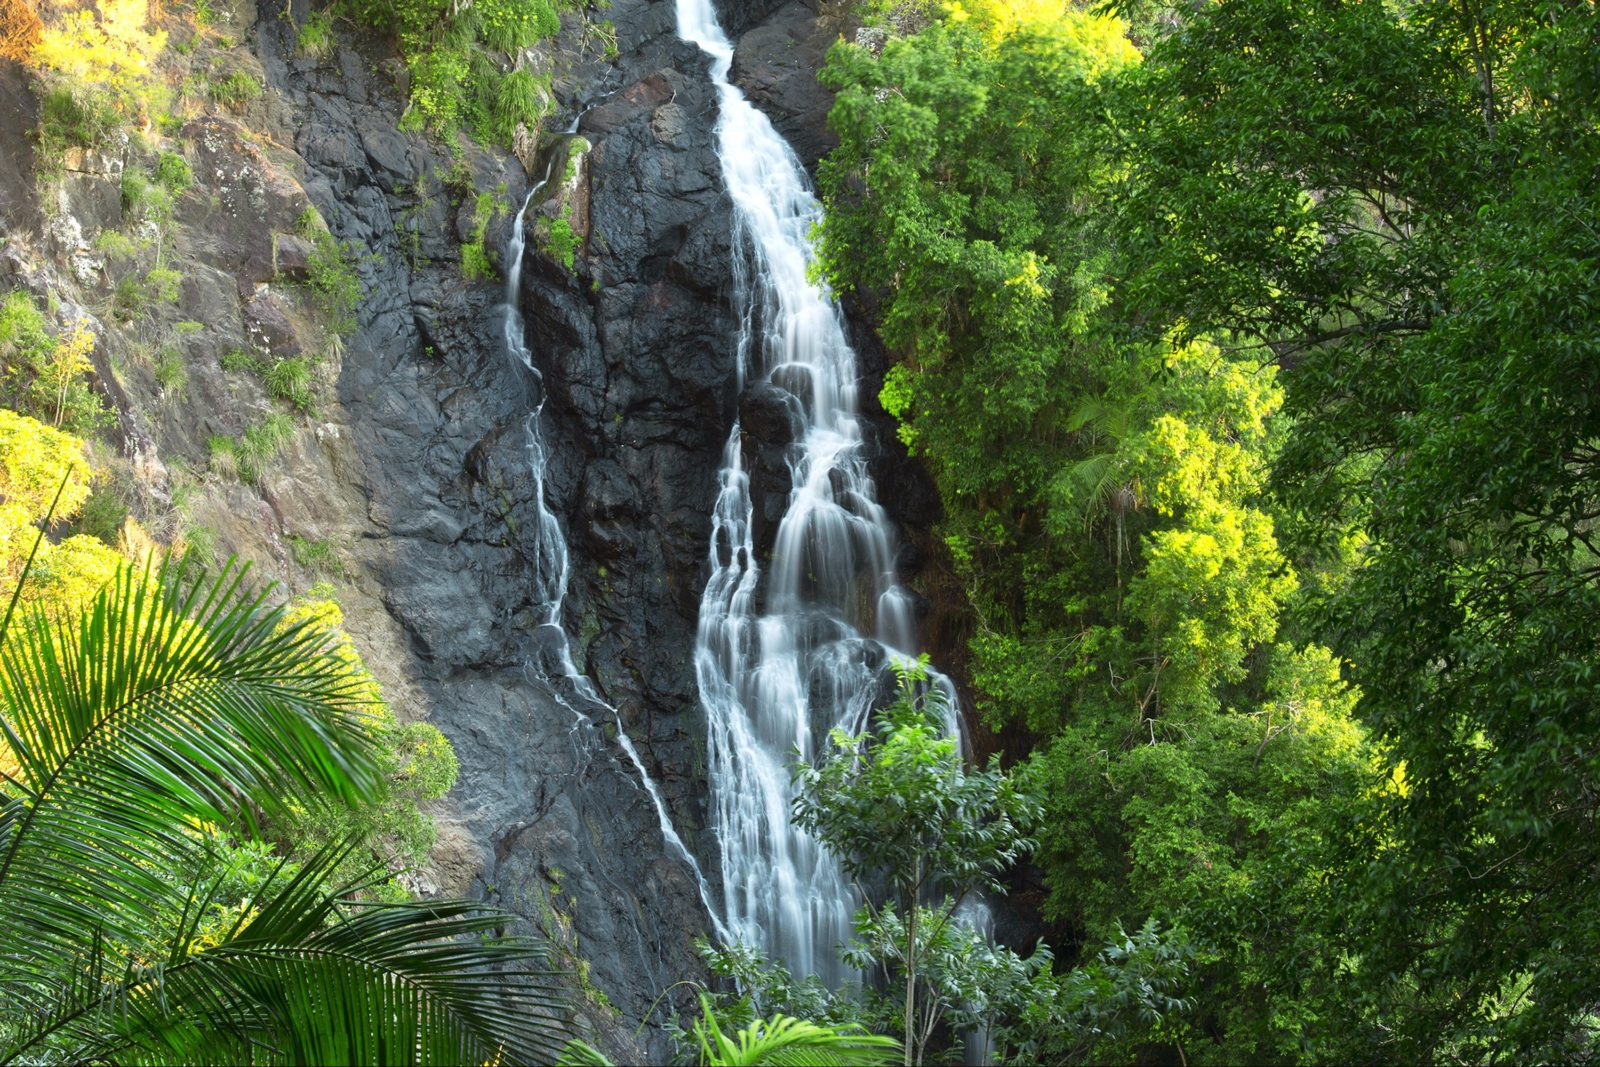 Waterfalls cascading down cliff face, Kondalilla National Park